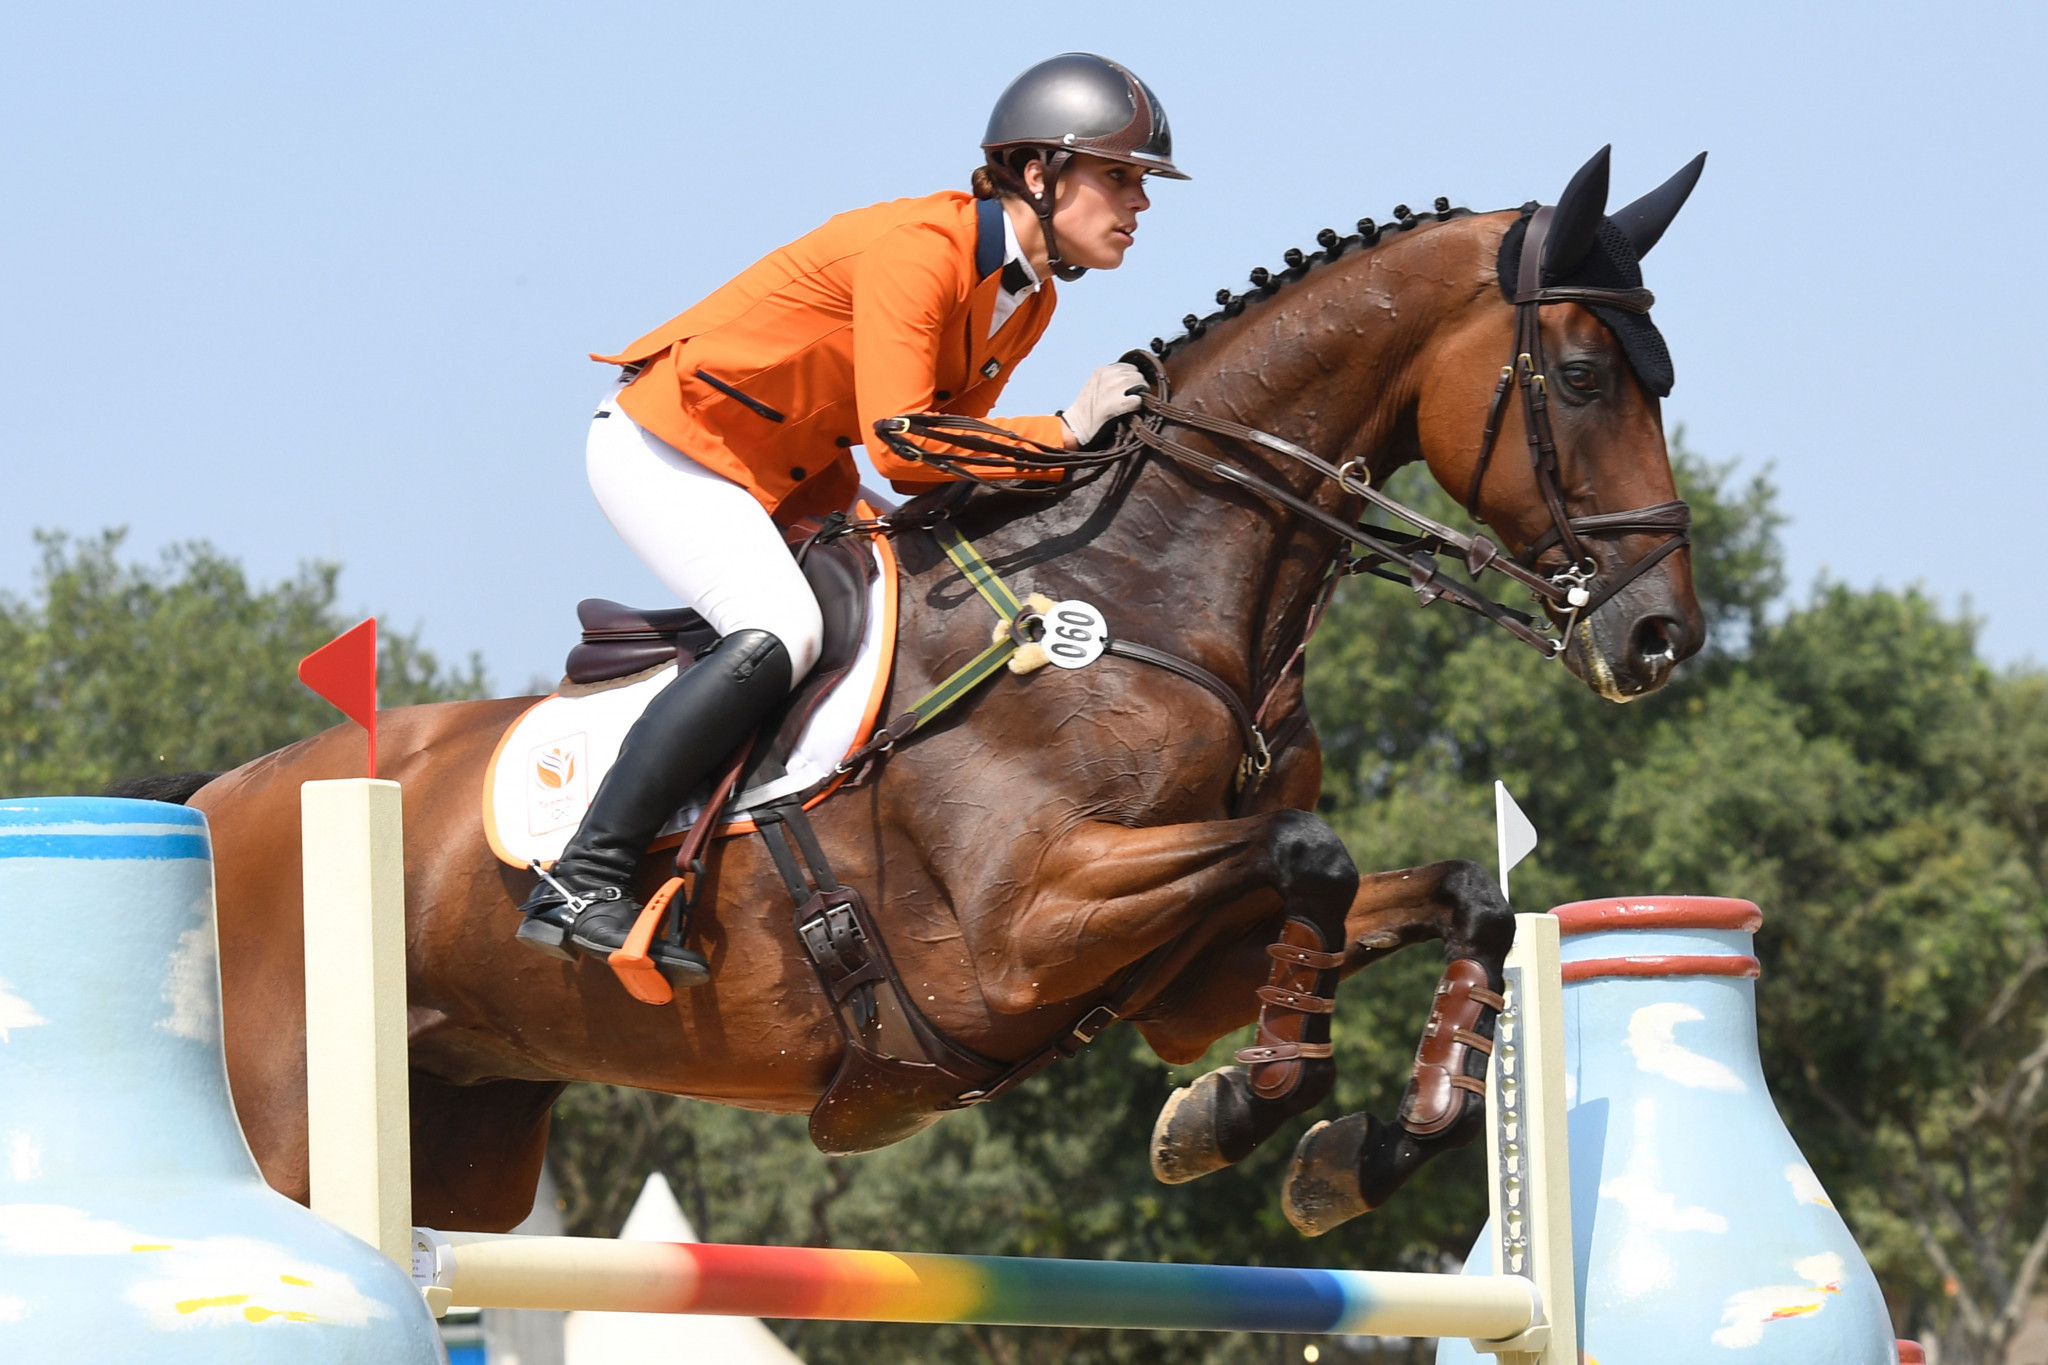 The Netherlands are second in the rankings thanks to the performance of Merel Blom ©Getty Images